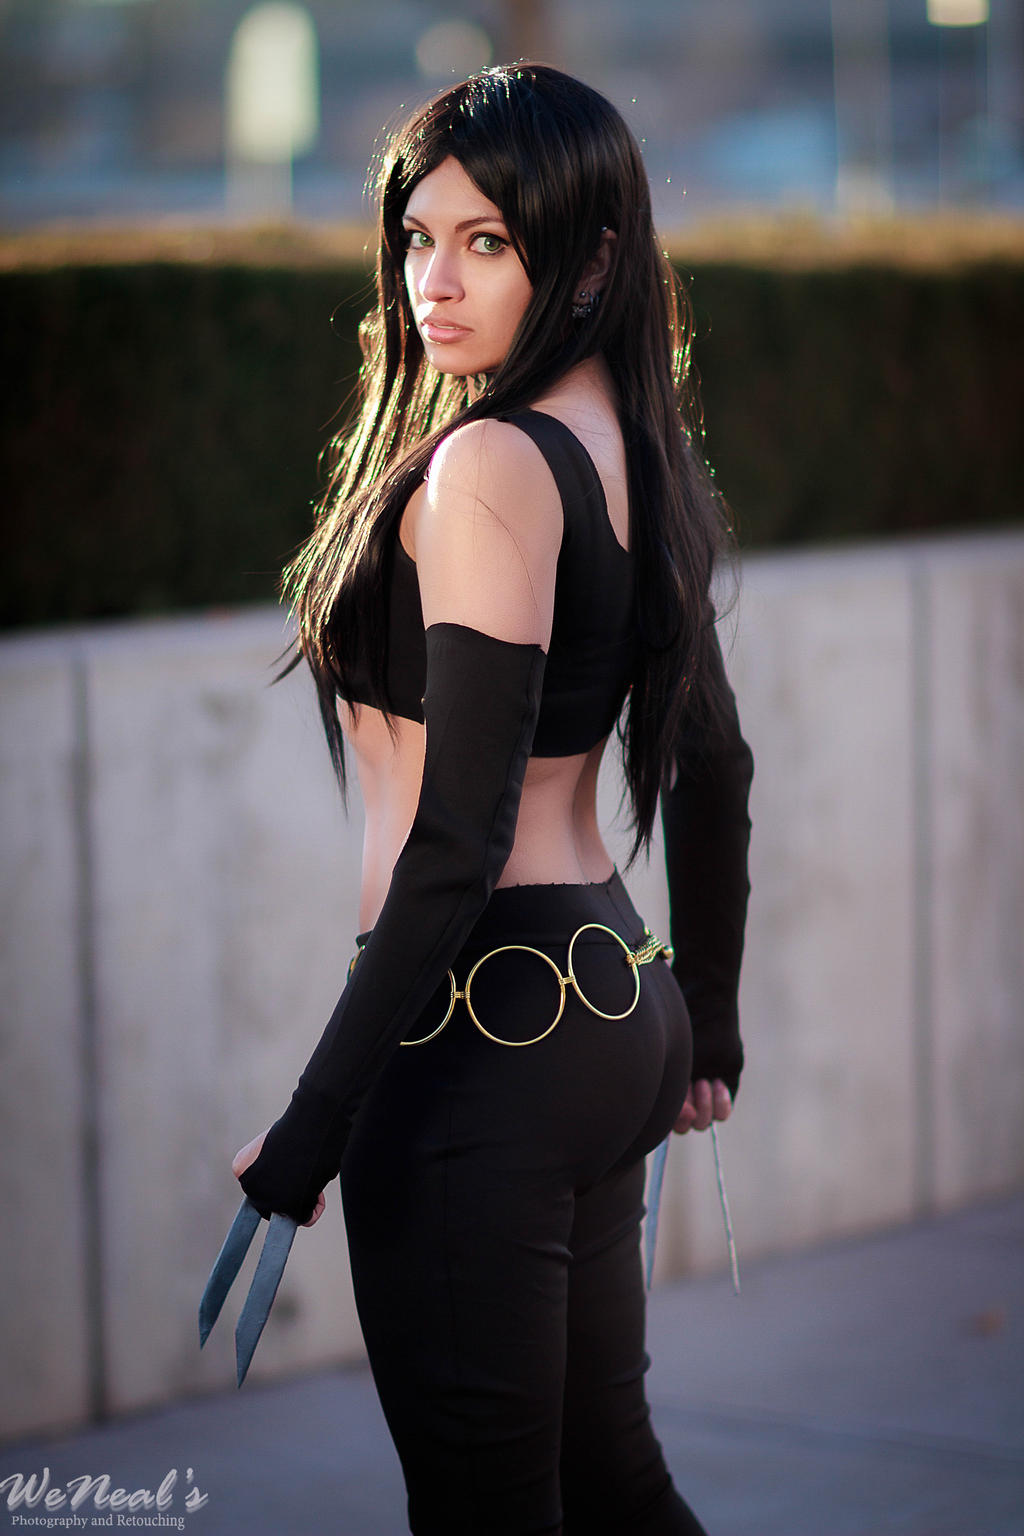 Cosplayer: Meev... X 23 Cosplay